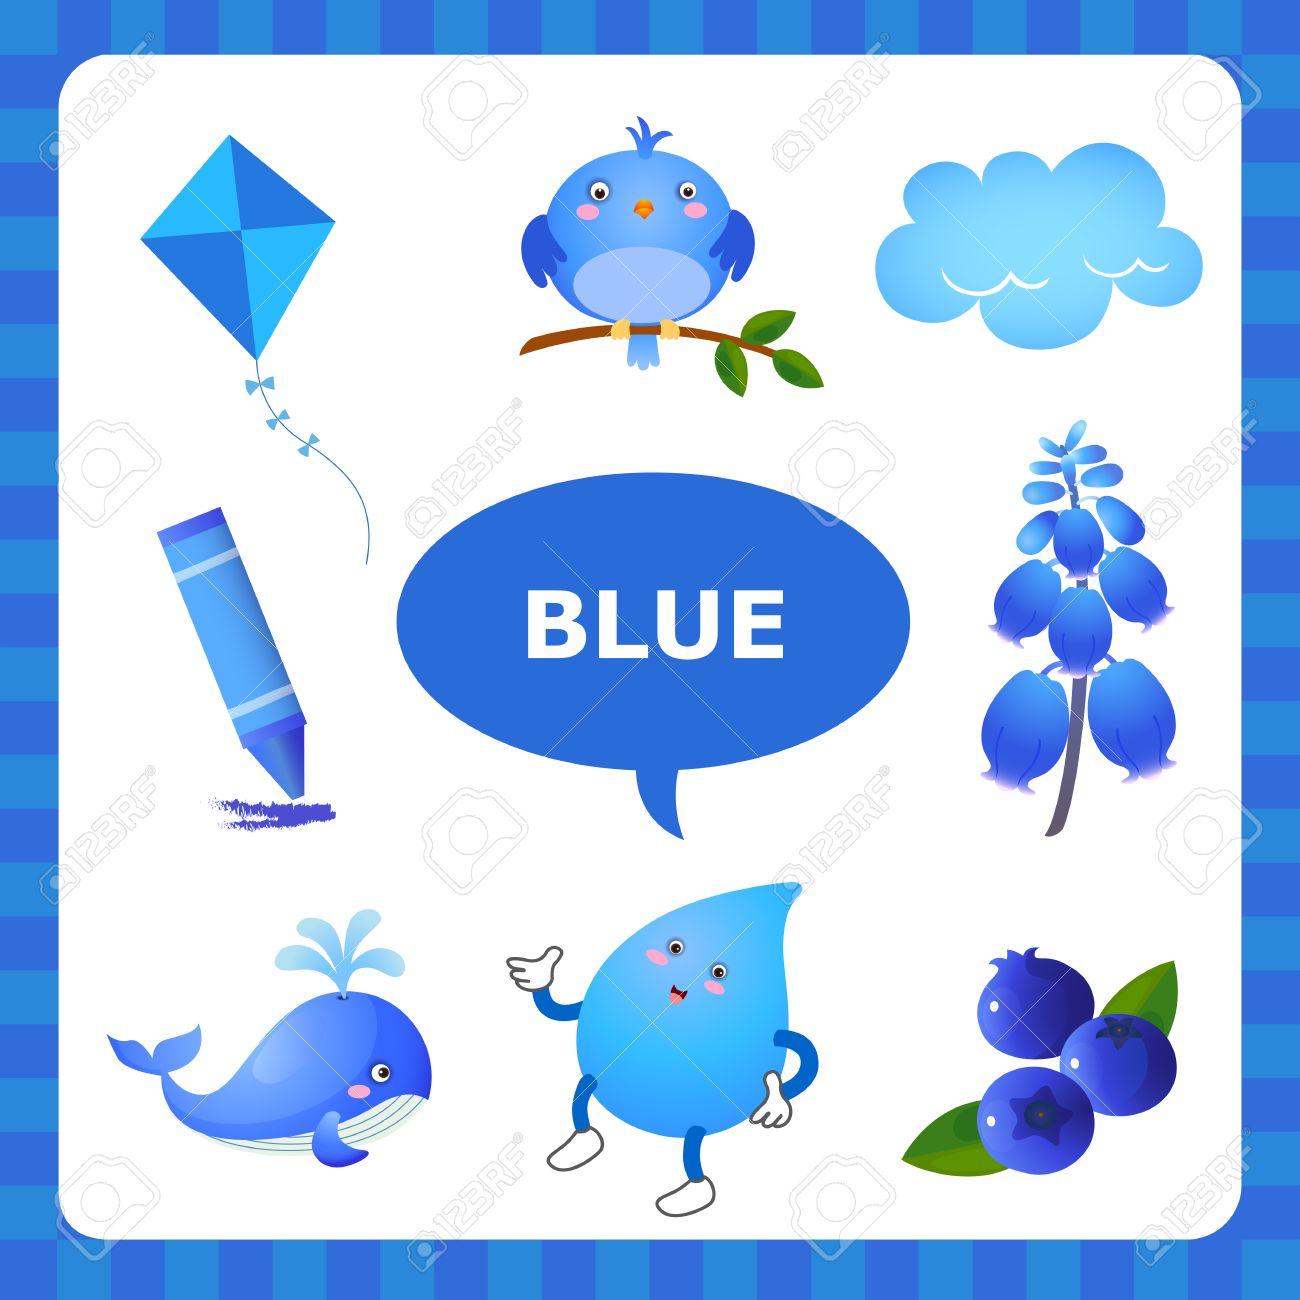 Learn The Color Blue things that are blue color.